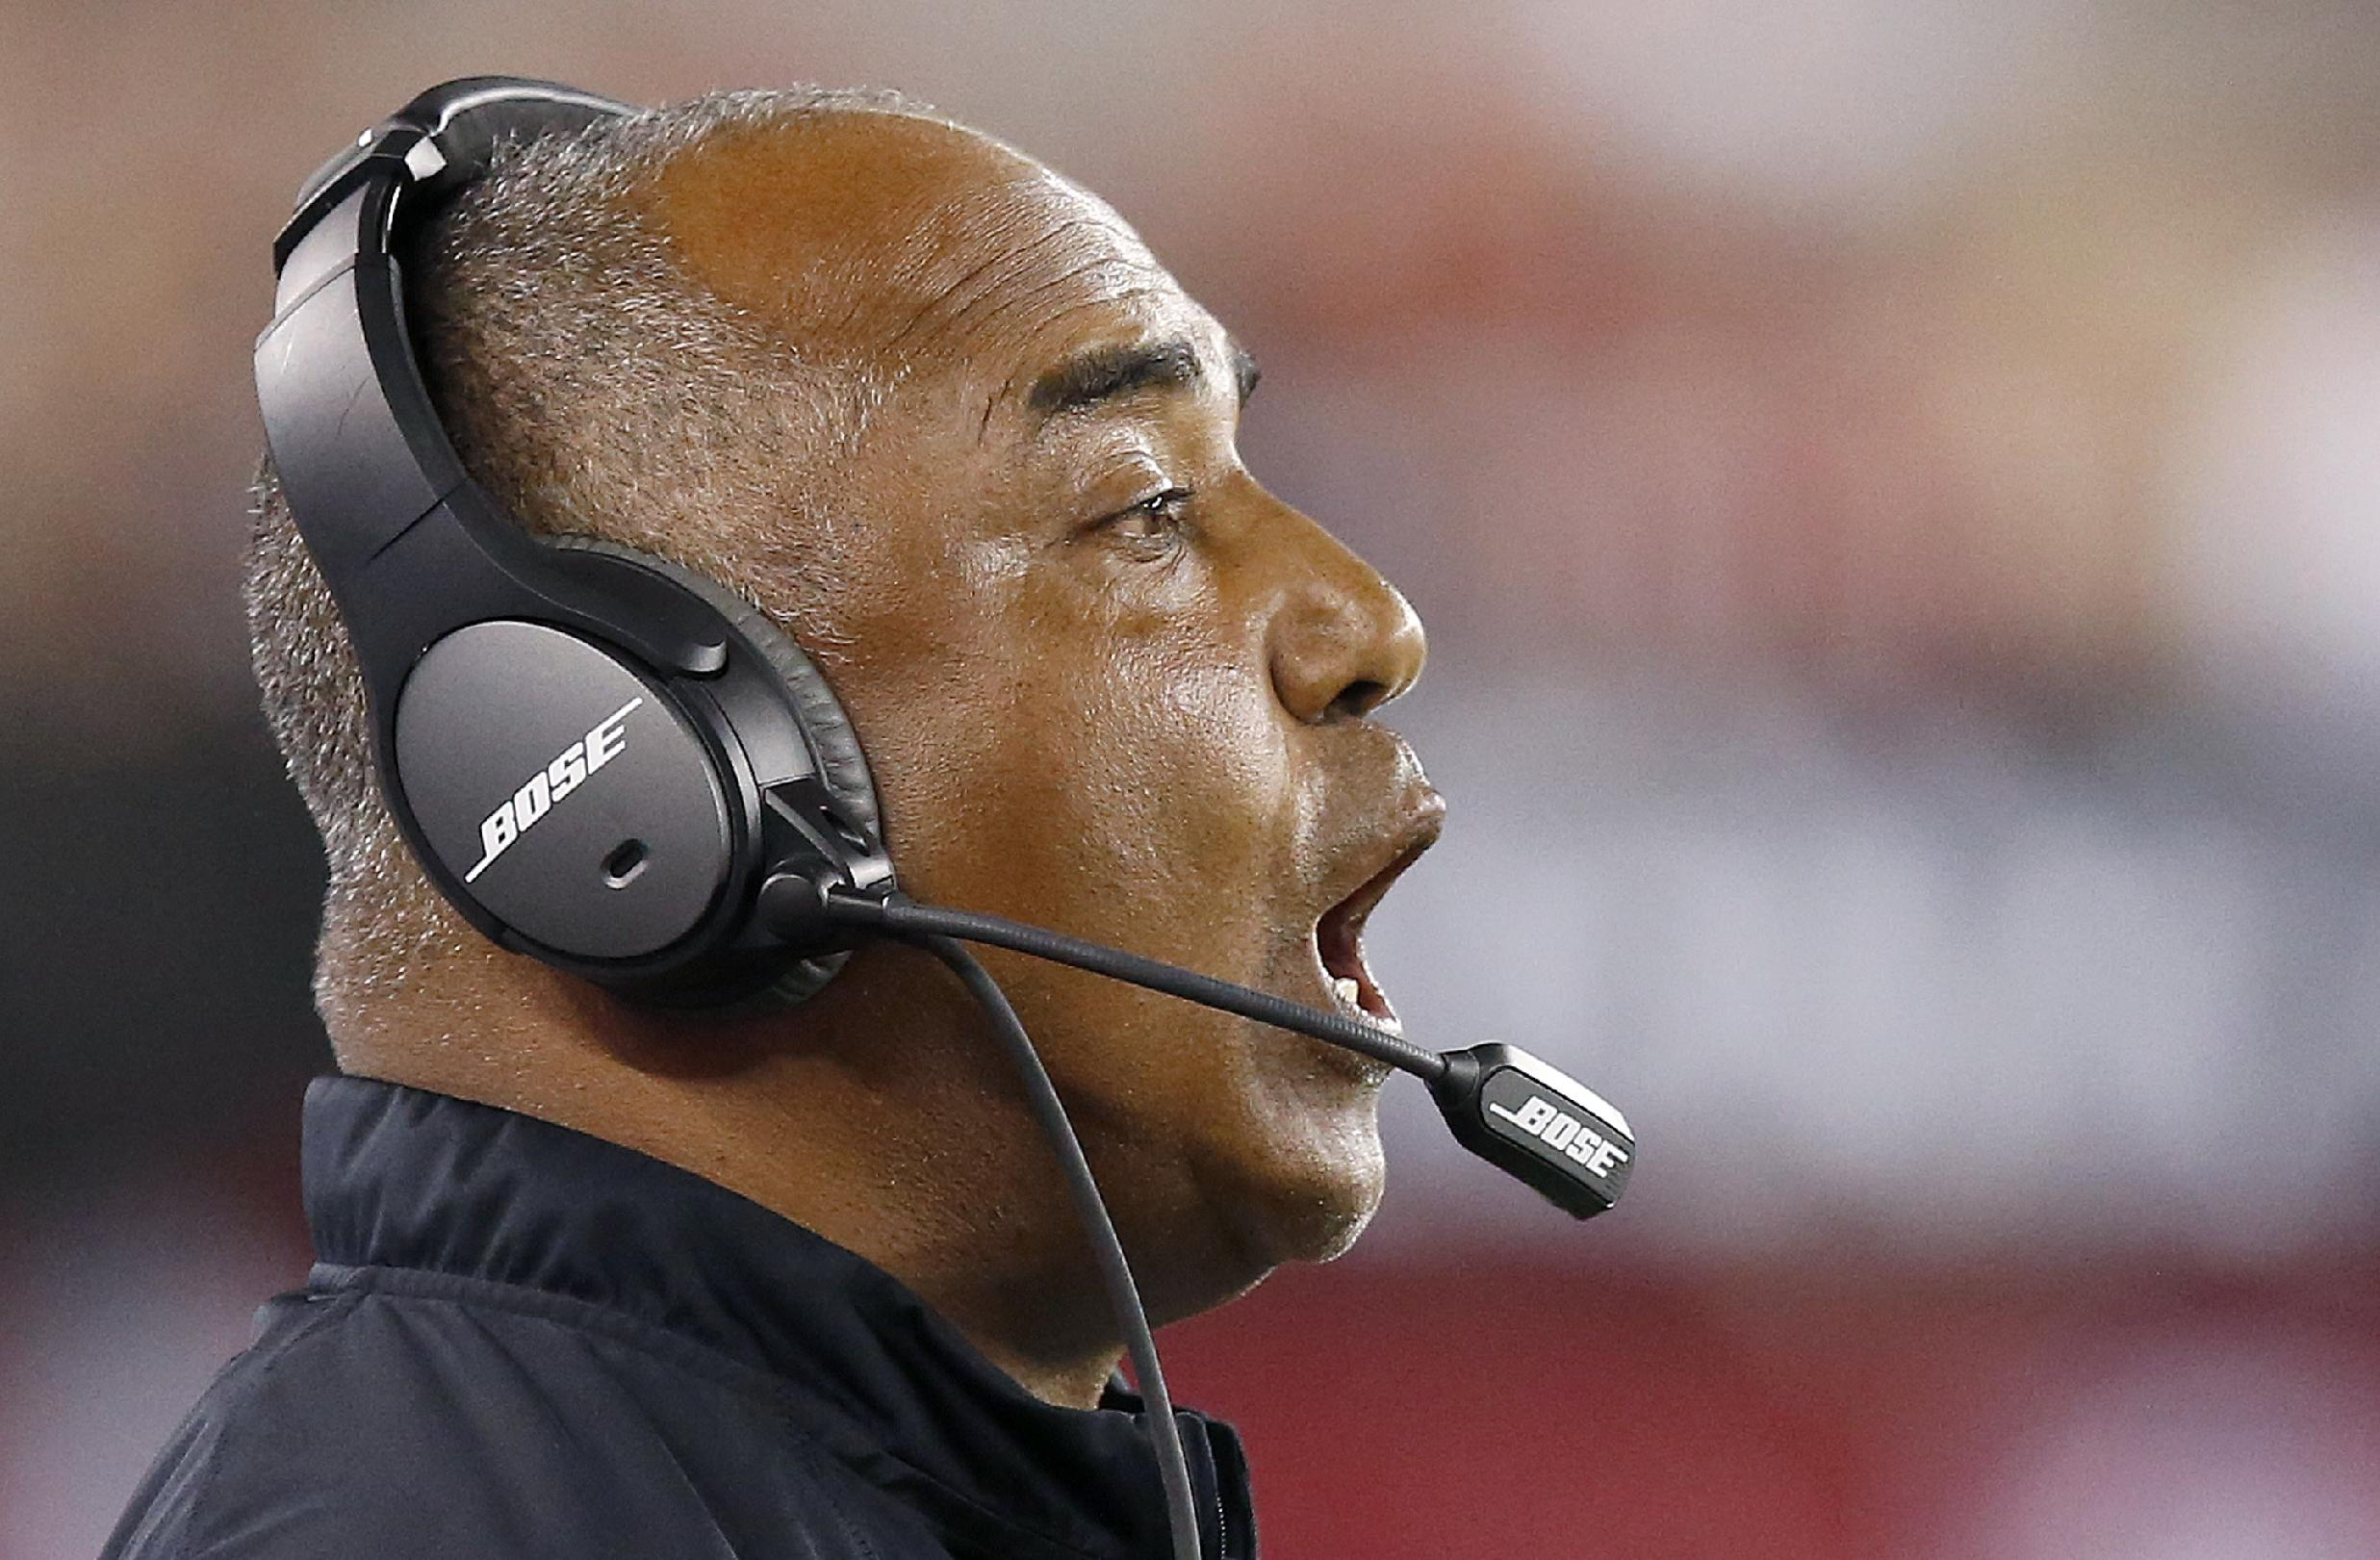 Cincinnati Bengals head coach Marvin Lewis shouts instructions to his players during the second half of an NFL preseason football game against the Arizona Cardinals Sunday, Aug. 24, 2014, in Glendale, Ariz.  The Bengals defeated the Cardinals 19-13